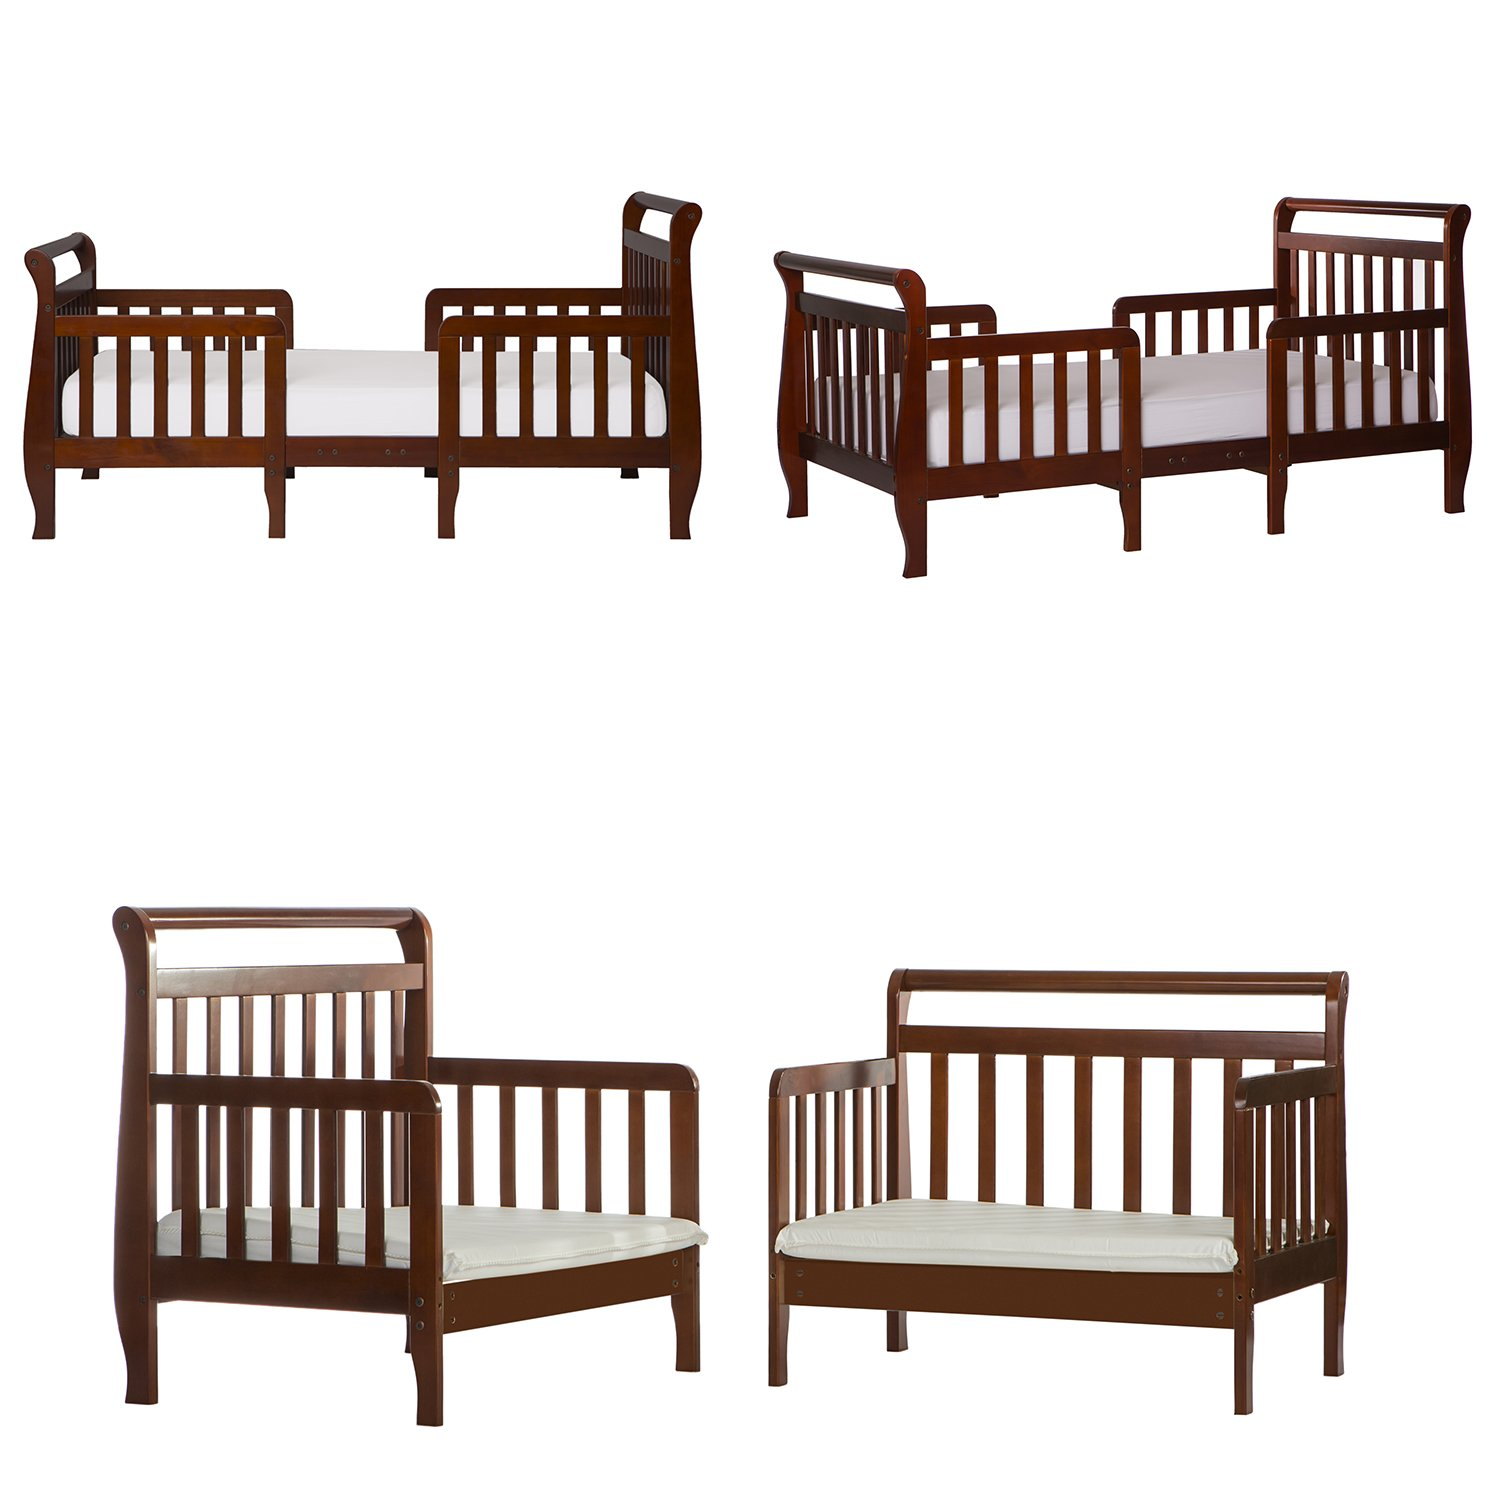 White Dream On Me Emma 3 in 1 Convertible Toddler Bed